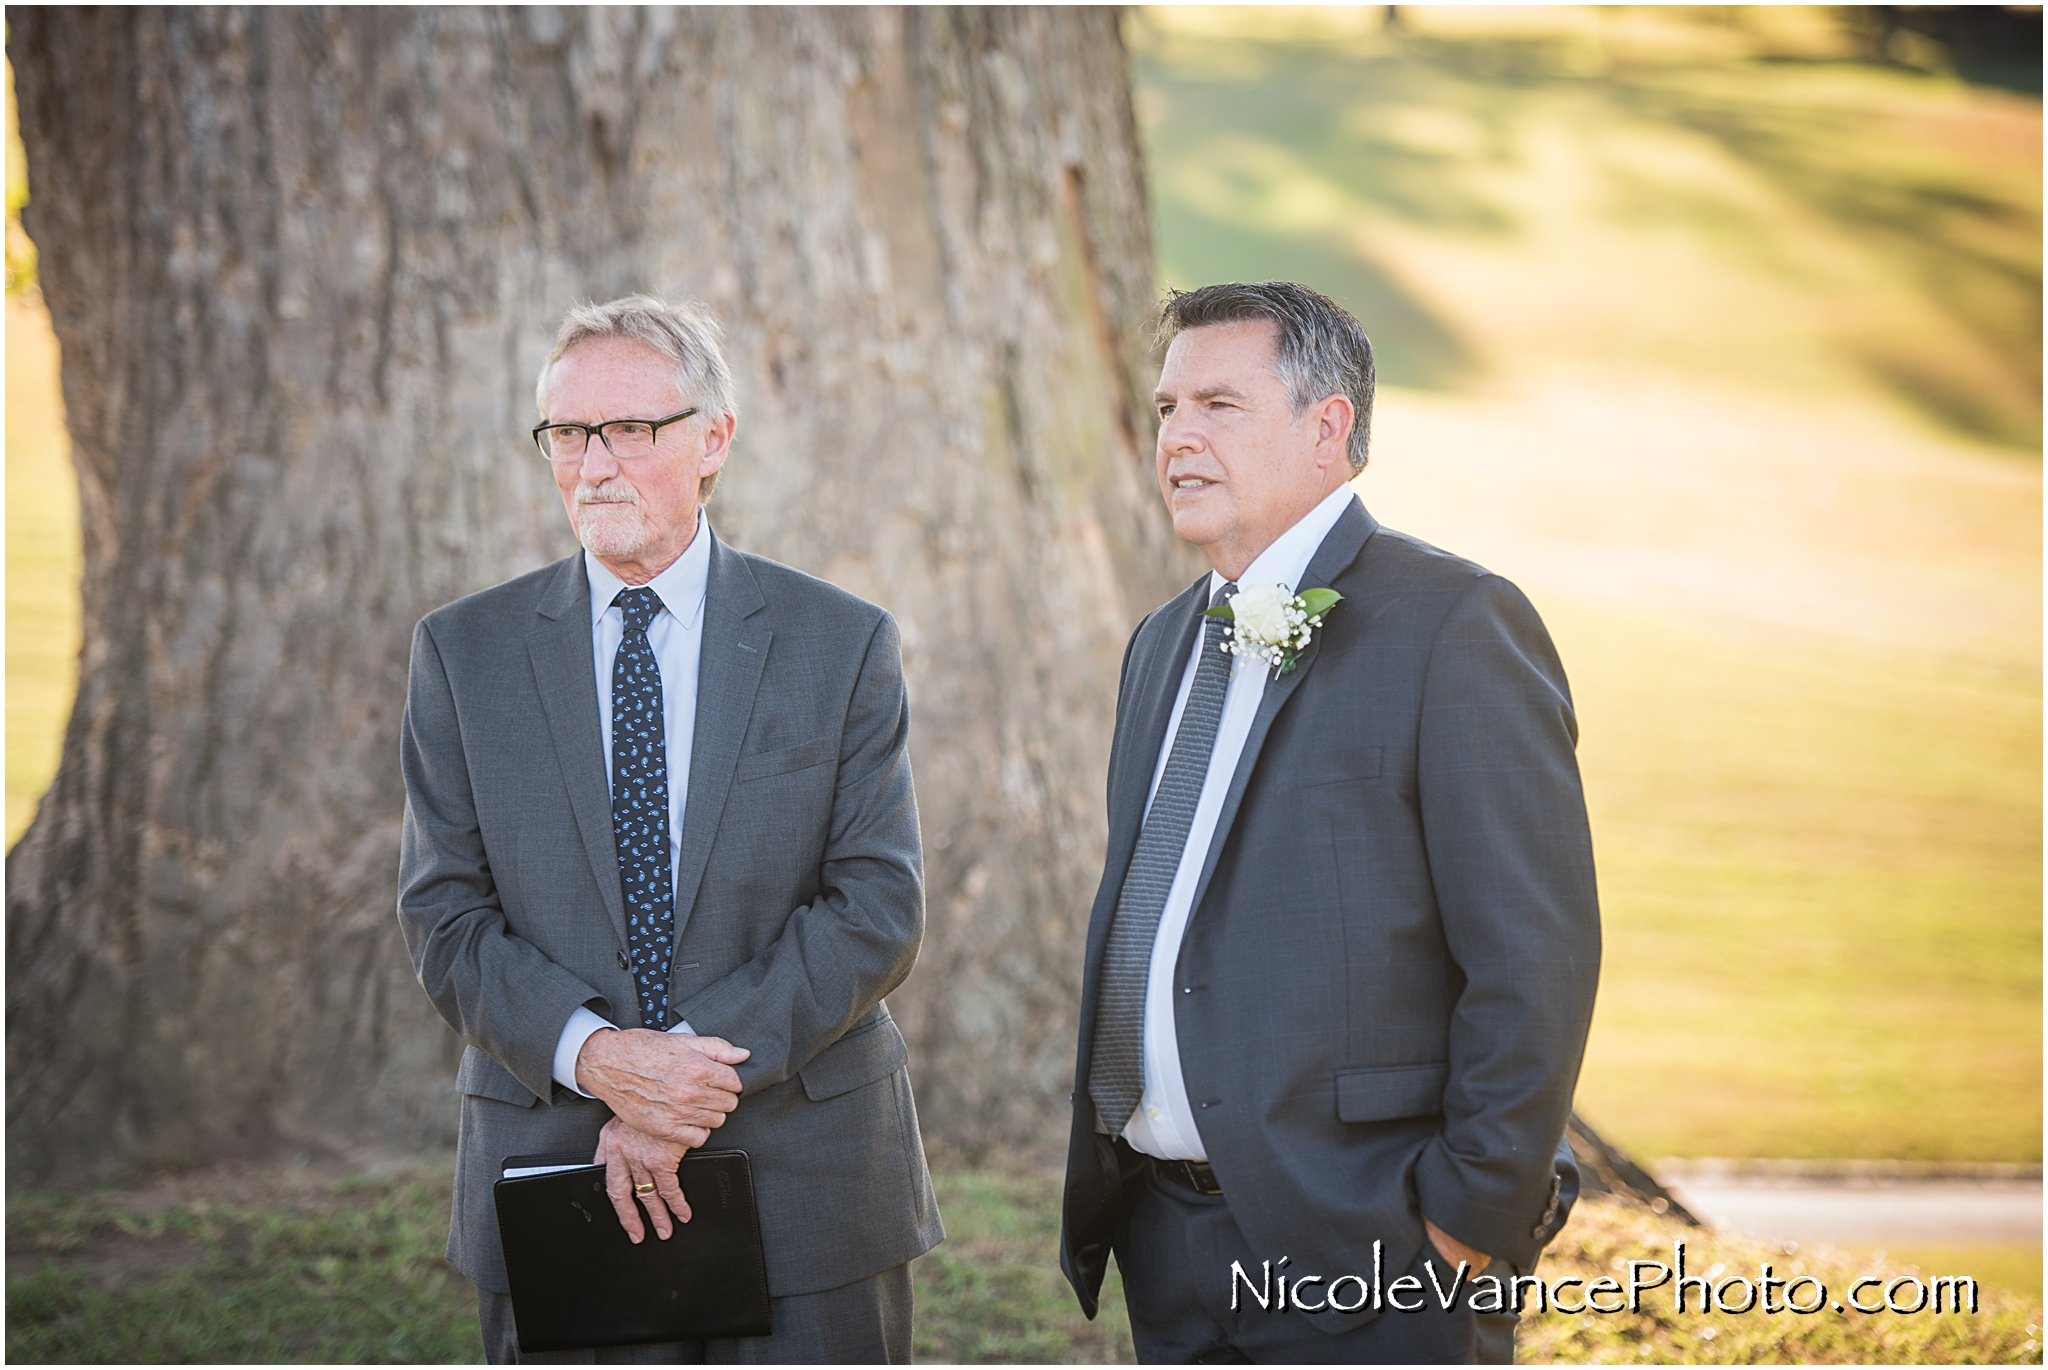 The groom sees his bride for the first time at their ceremony at Maymont Park in Richmond, Virginia.